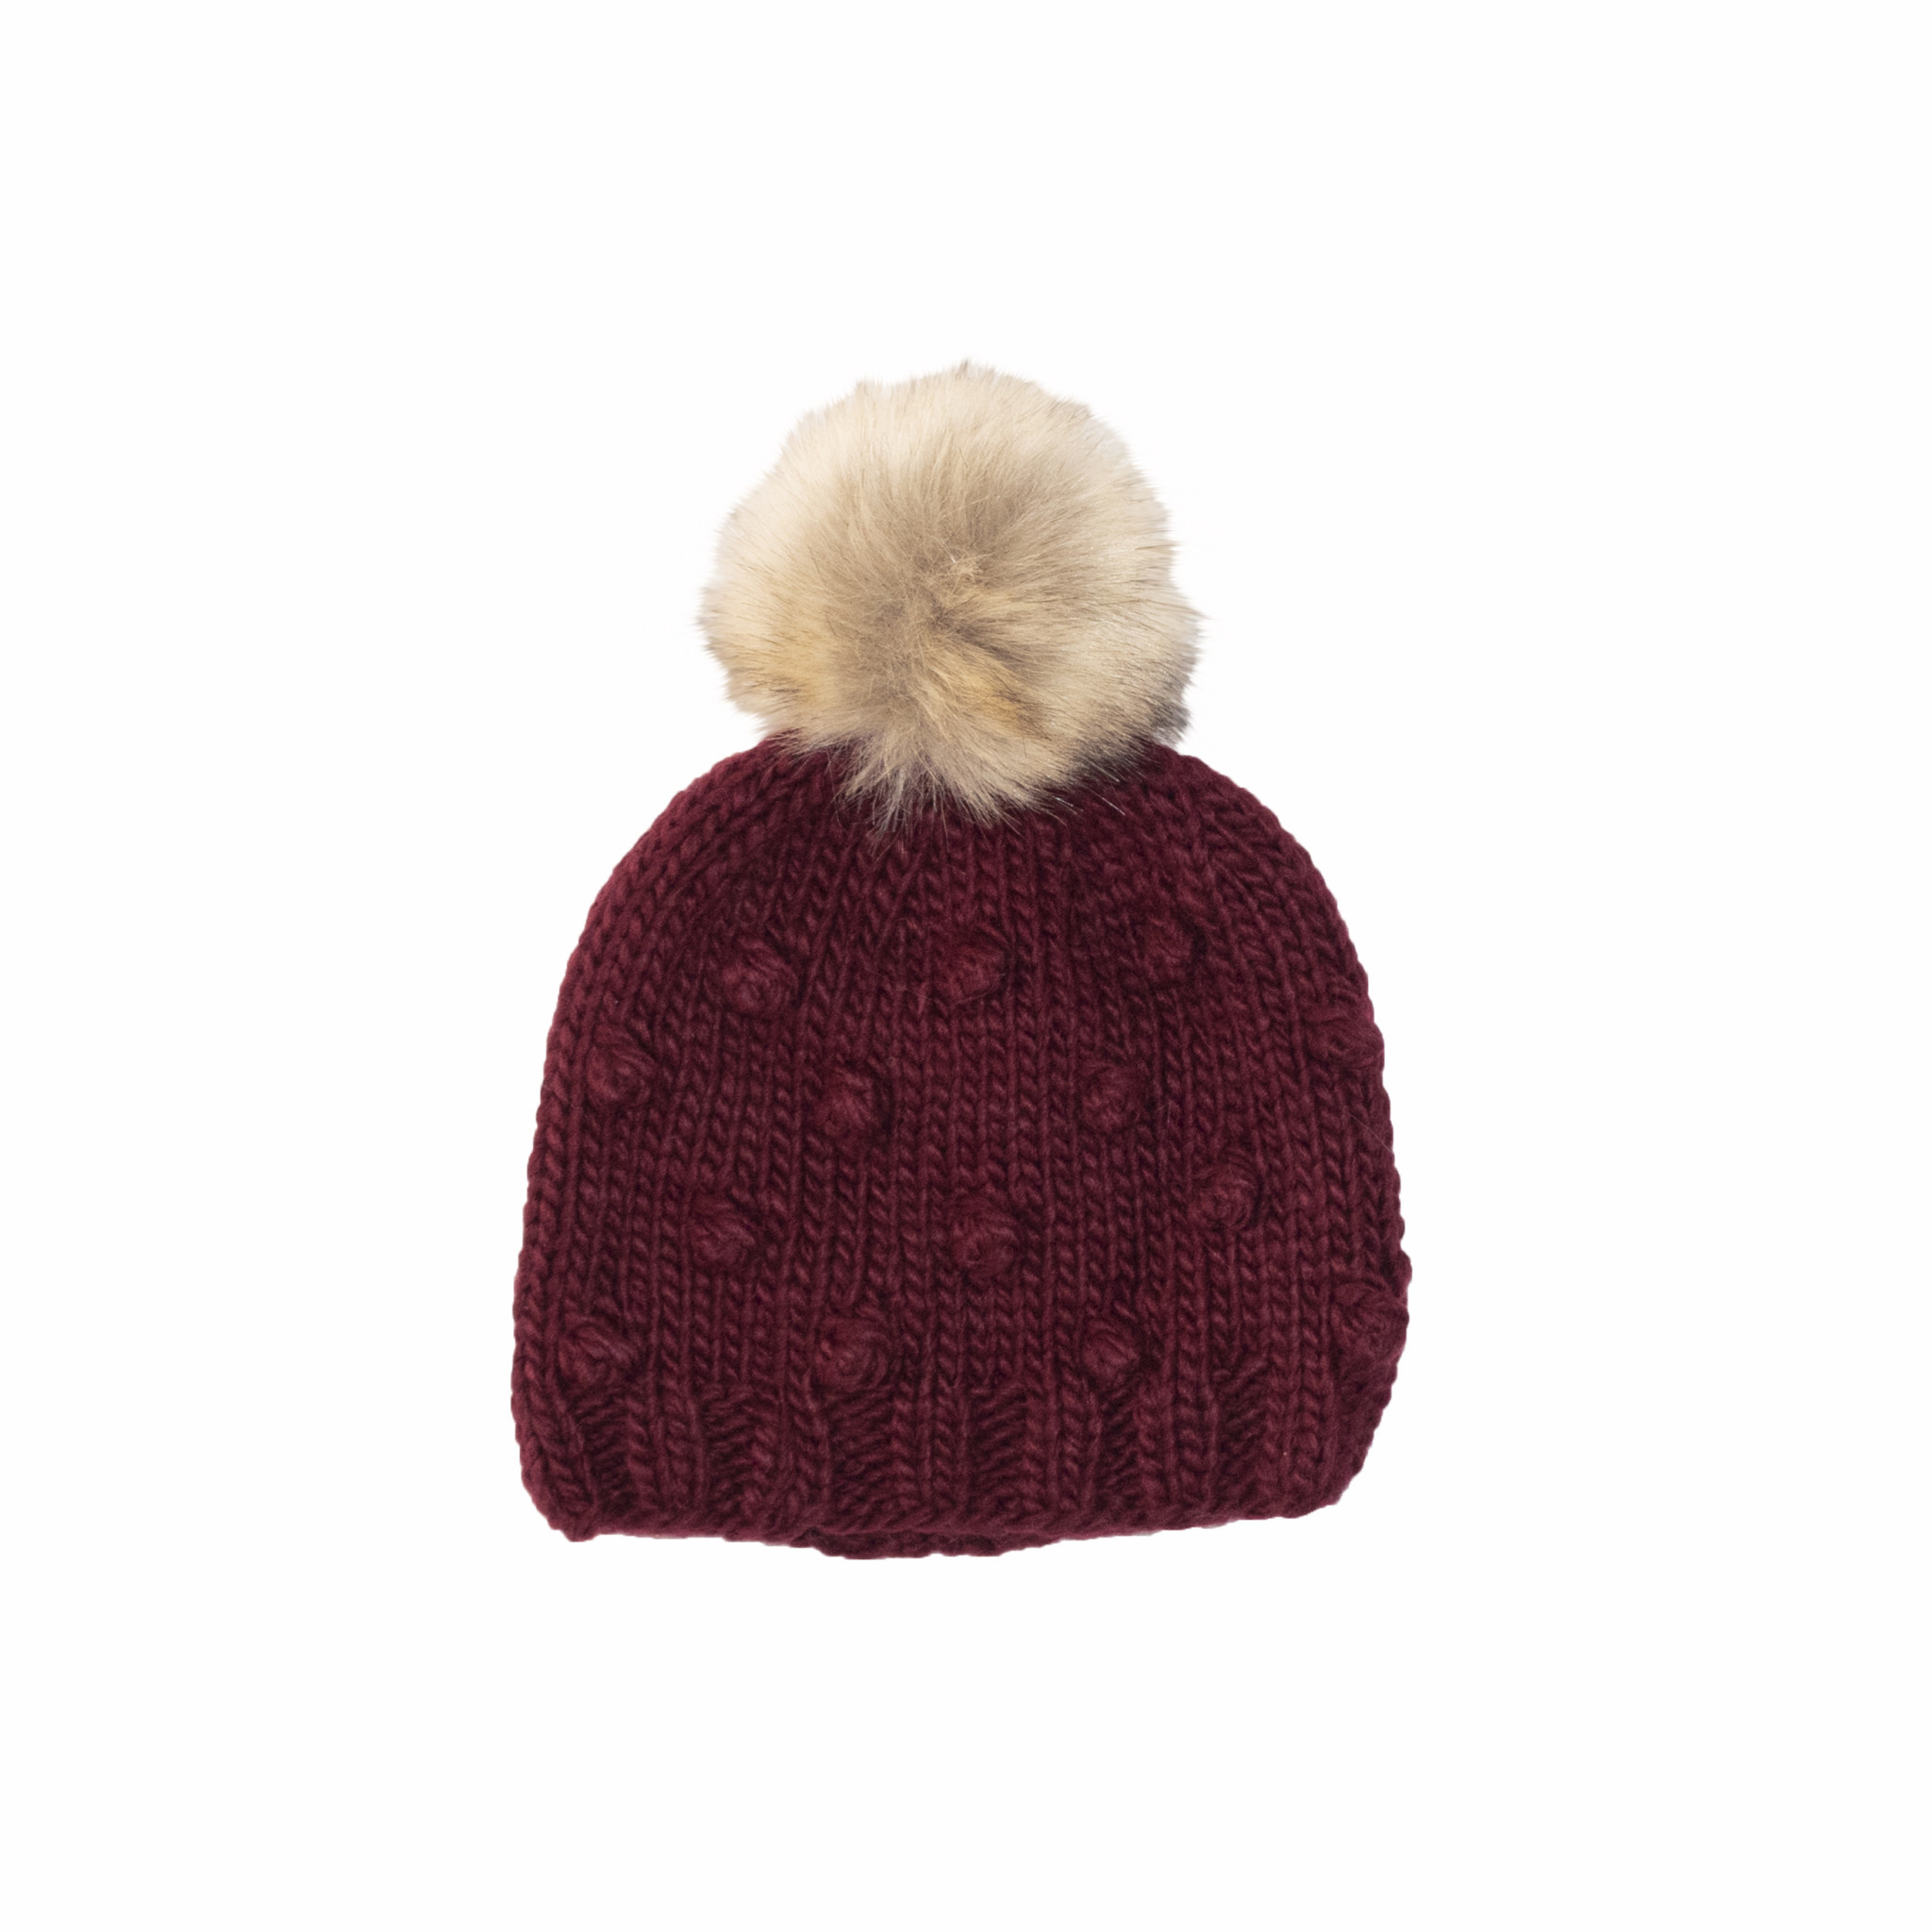 The Blueberry Hill The Blueberry Hill Adult Coco Knit Hat - Pomegranate - L